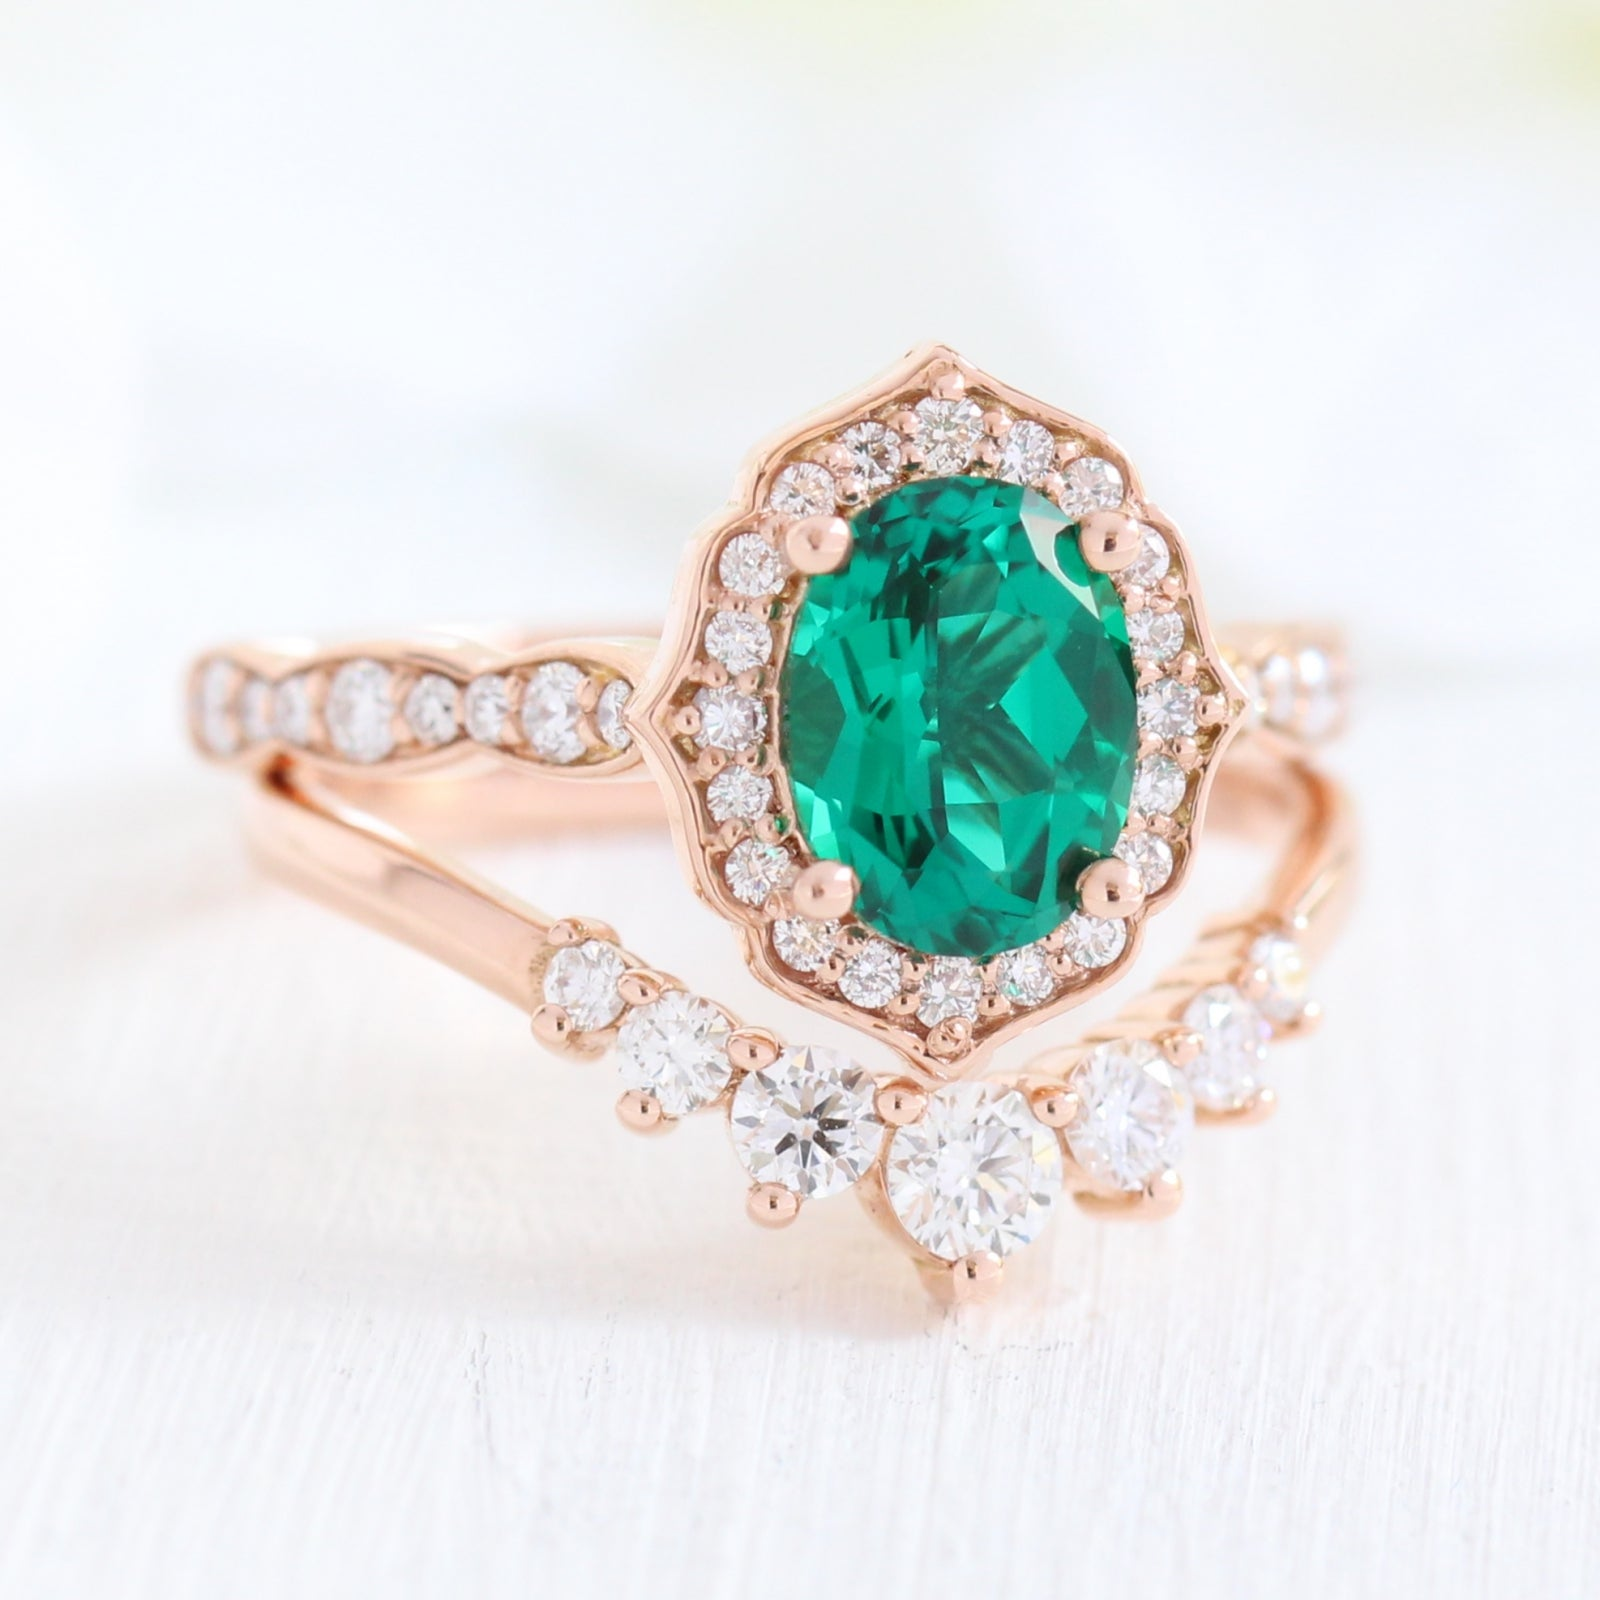 It is just a graphic of Oval Vintage Floral Bridal Set w/ Emerald and 45 Stone Diamond Ring